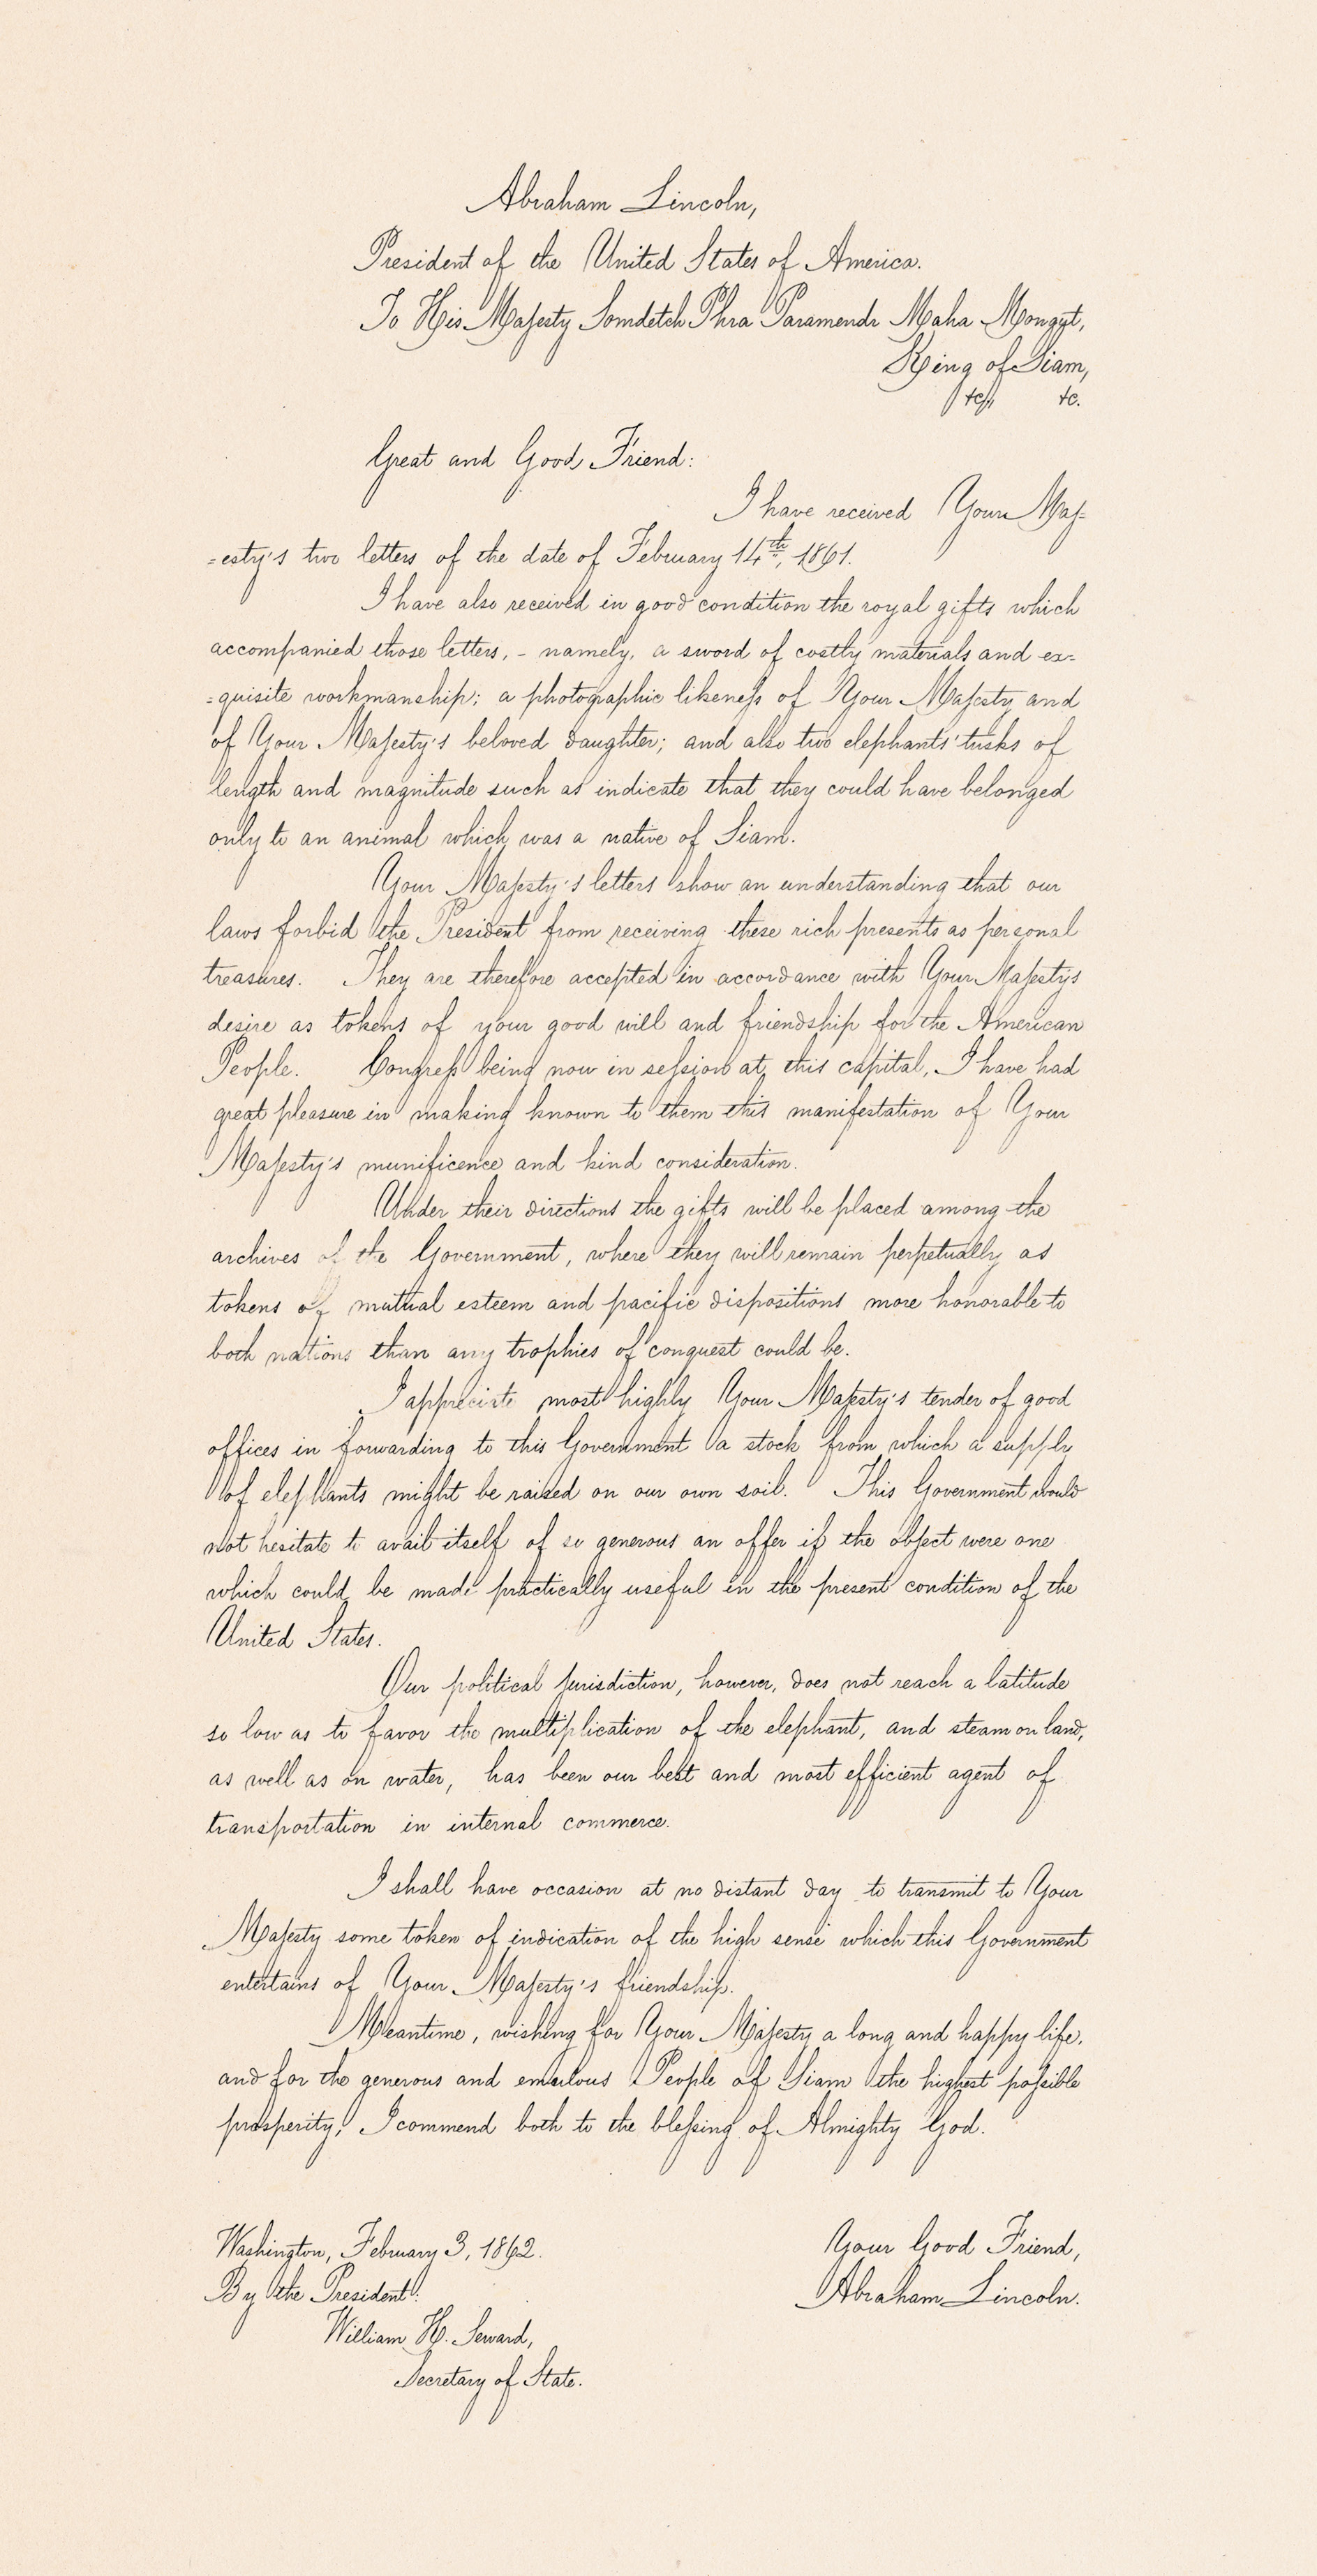 Letterbook copy of letter from President Abraham Lincoln to King Mongkut of Siam, February 14, 1862 Letter to Foreign Sovereigns and Heads of State, 1829-1877, General Records of the Department of State National Archives and Records Administration (National Archives Identifier 6158611)